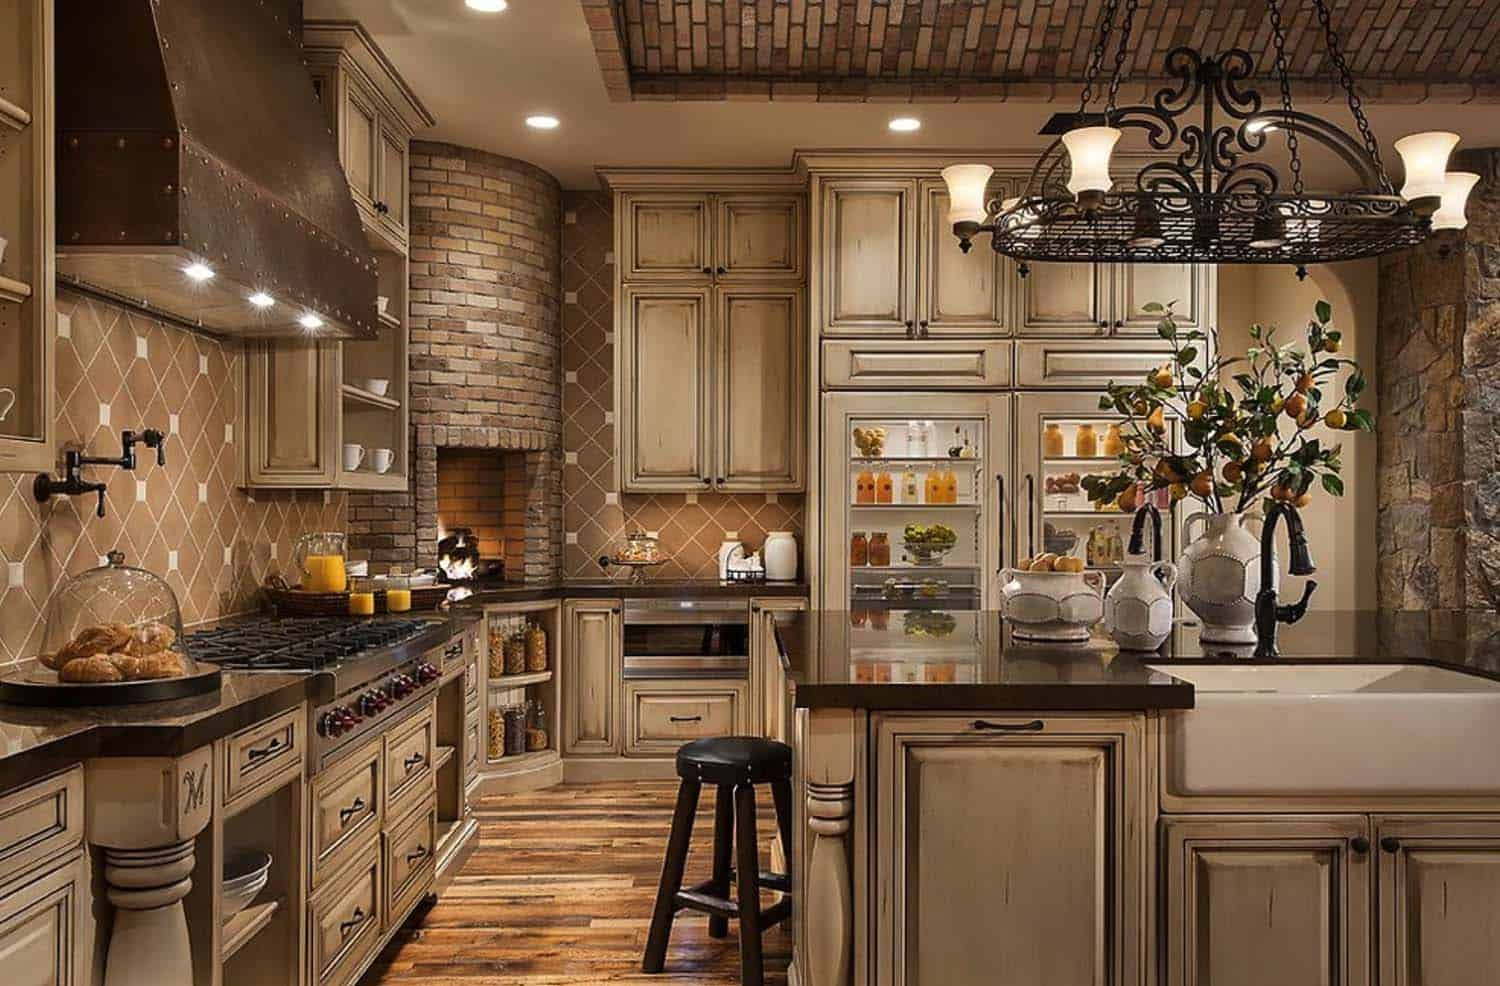 Kitchen Showcasing Cozy Fireplace-17-1 Kindesign